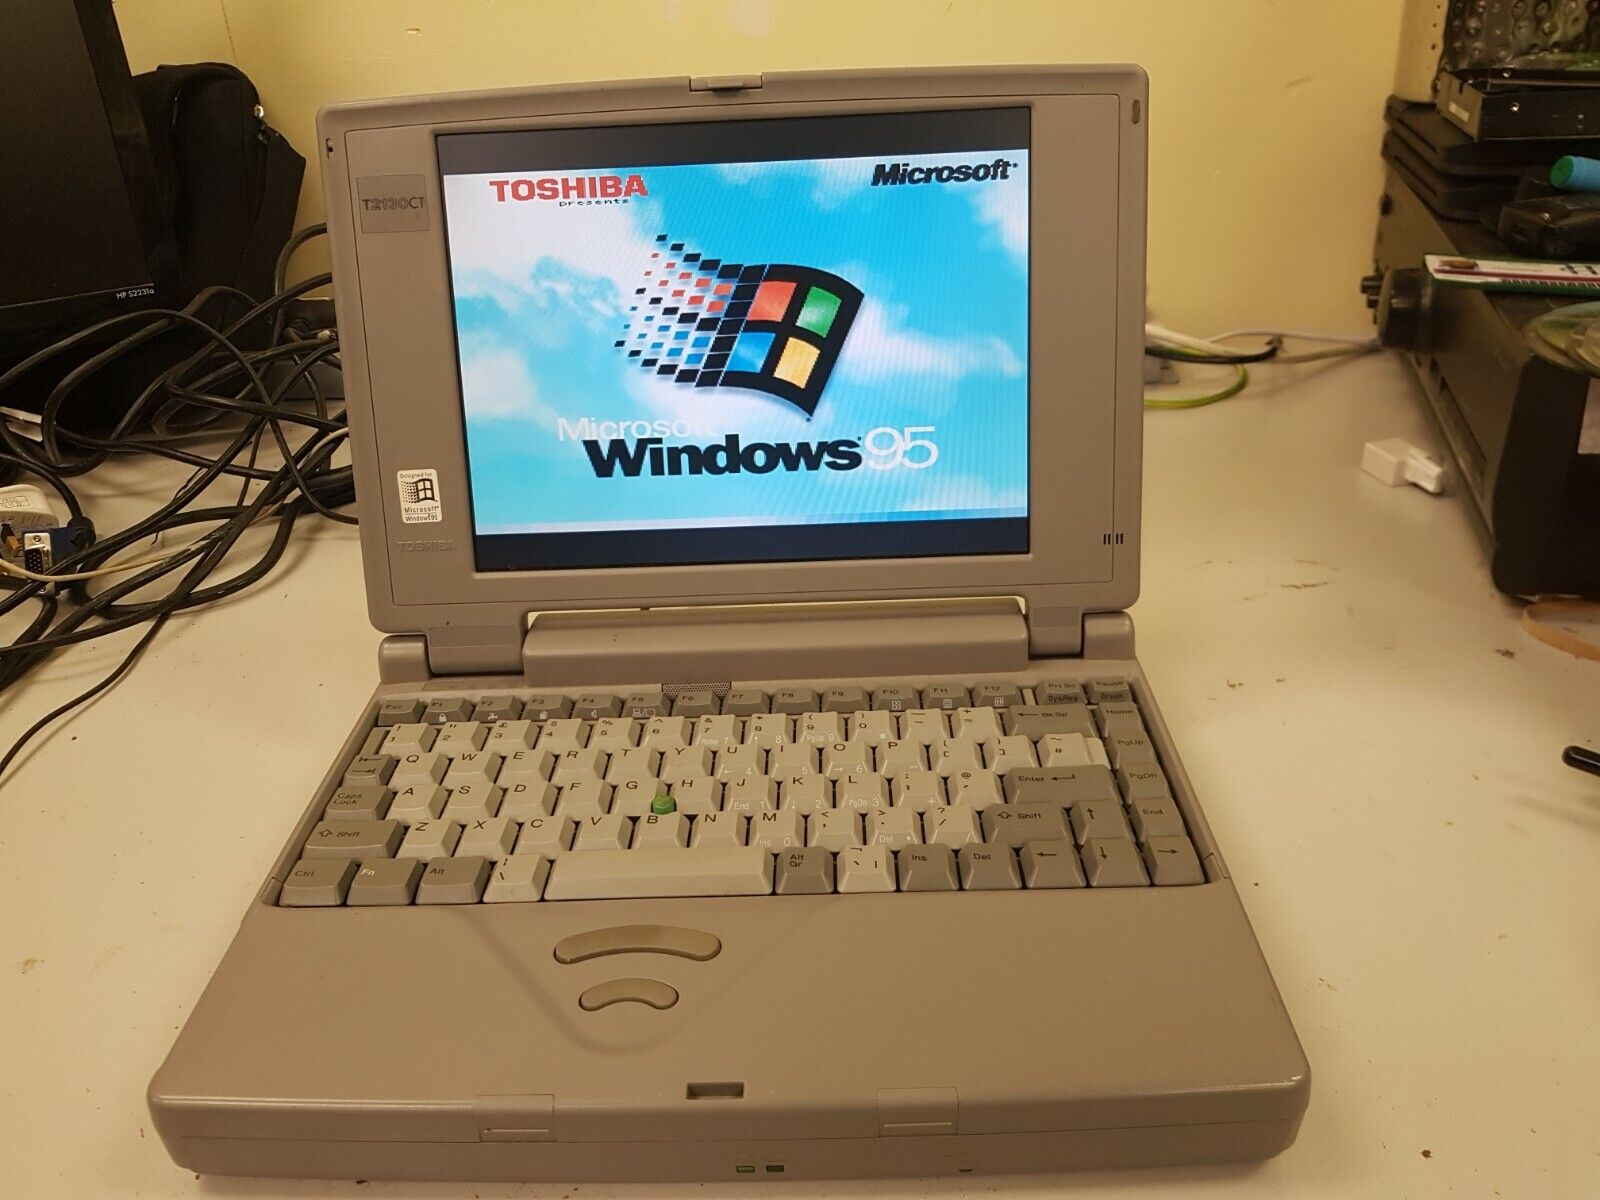 Image 1 - Toshiba T2130CT /520 Vintage Laptop -- Working